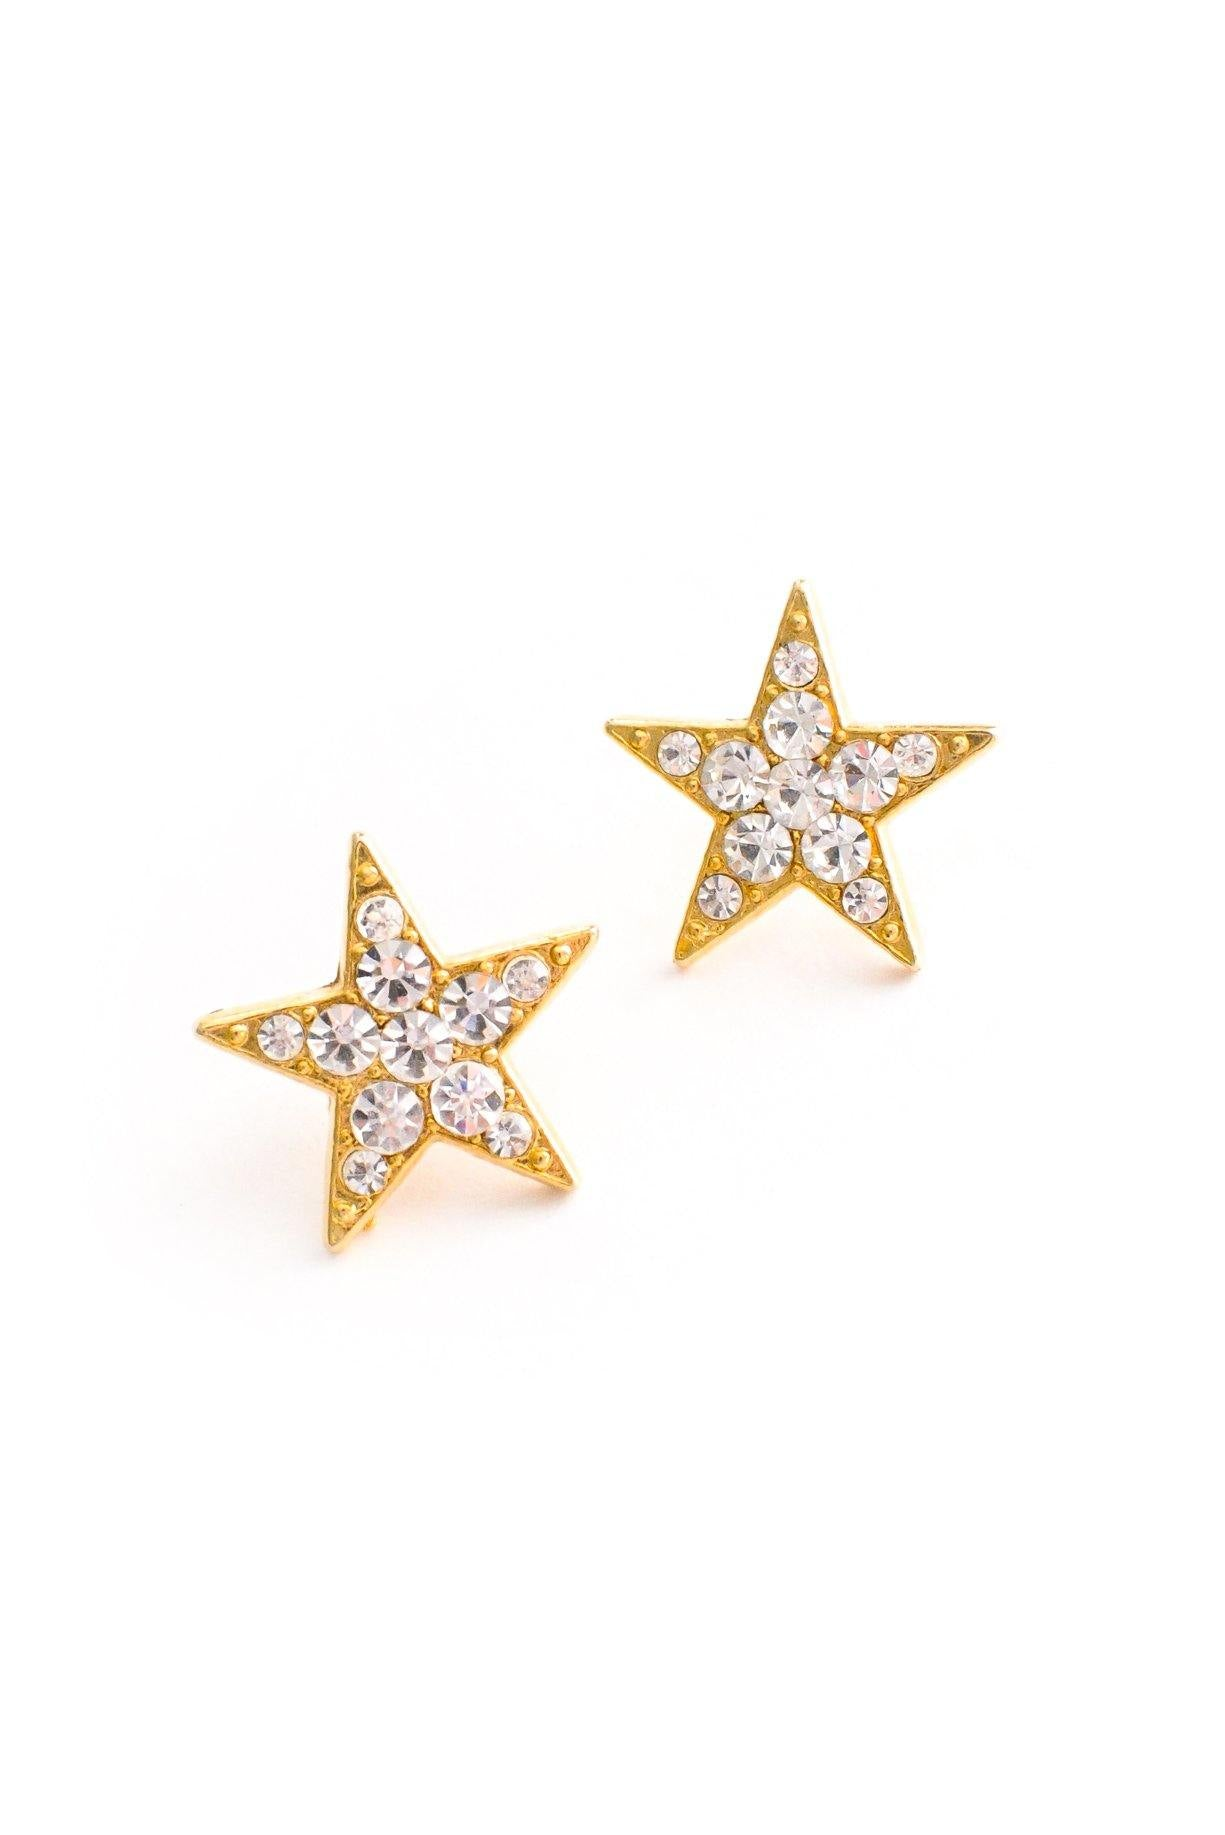 Rhinestone Star Pierced Earrings